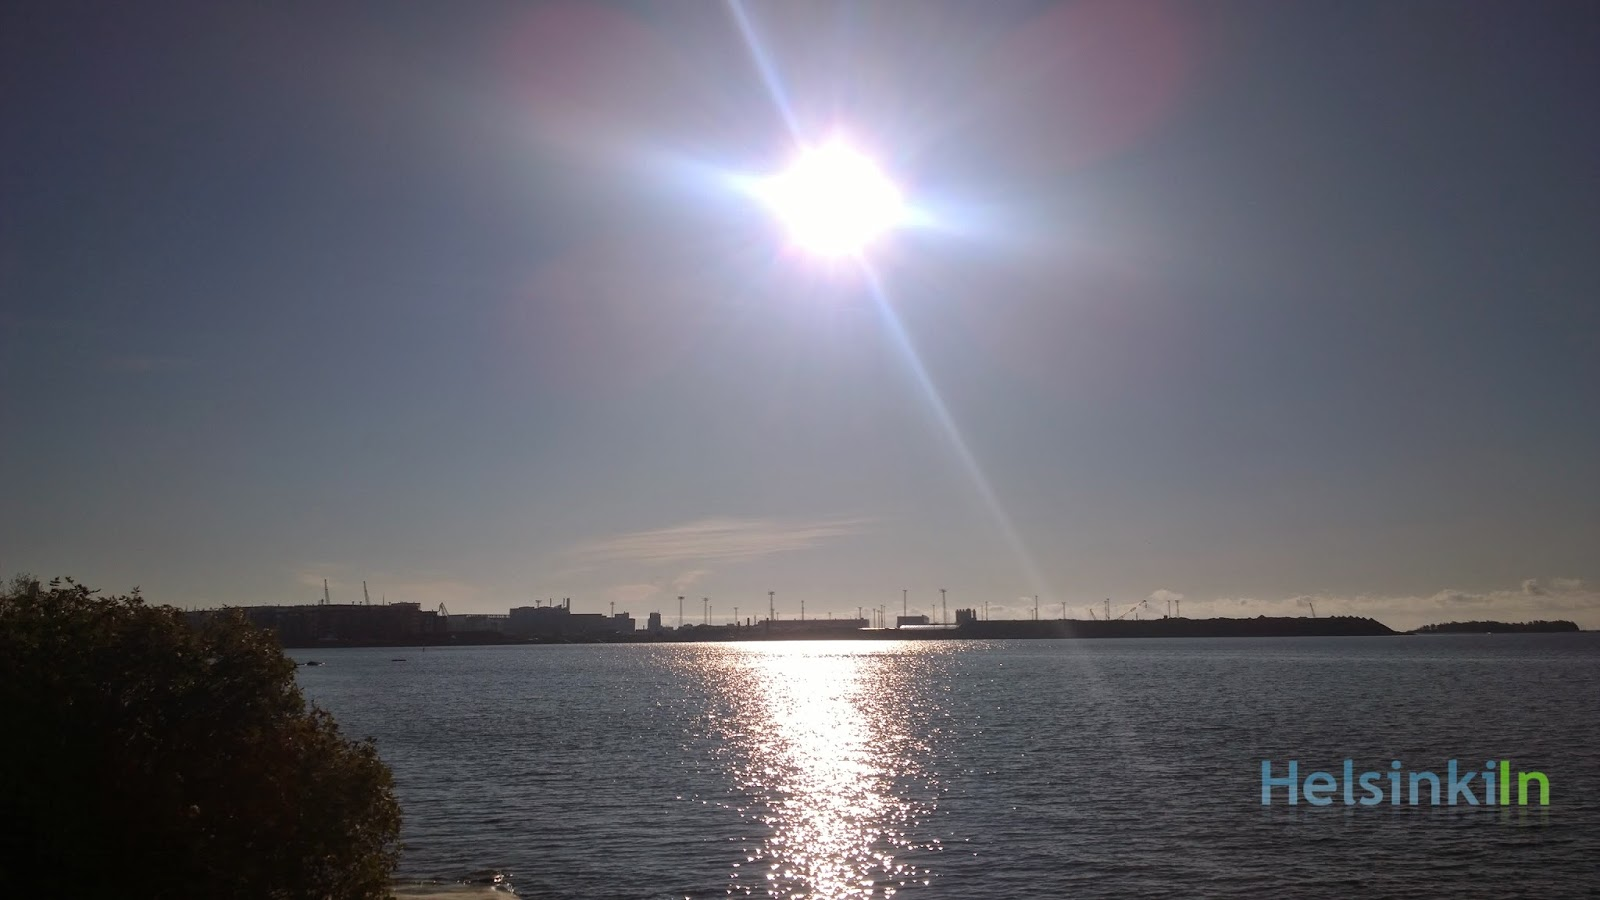 Sun over Hernesaari